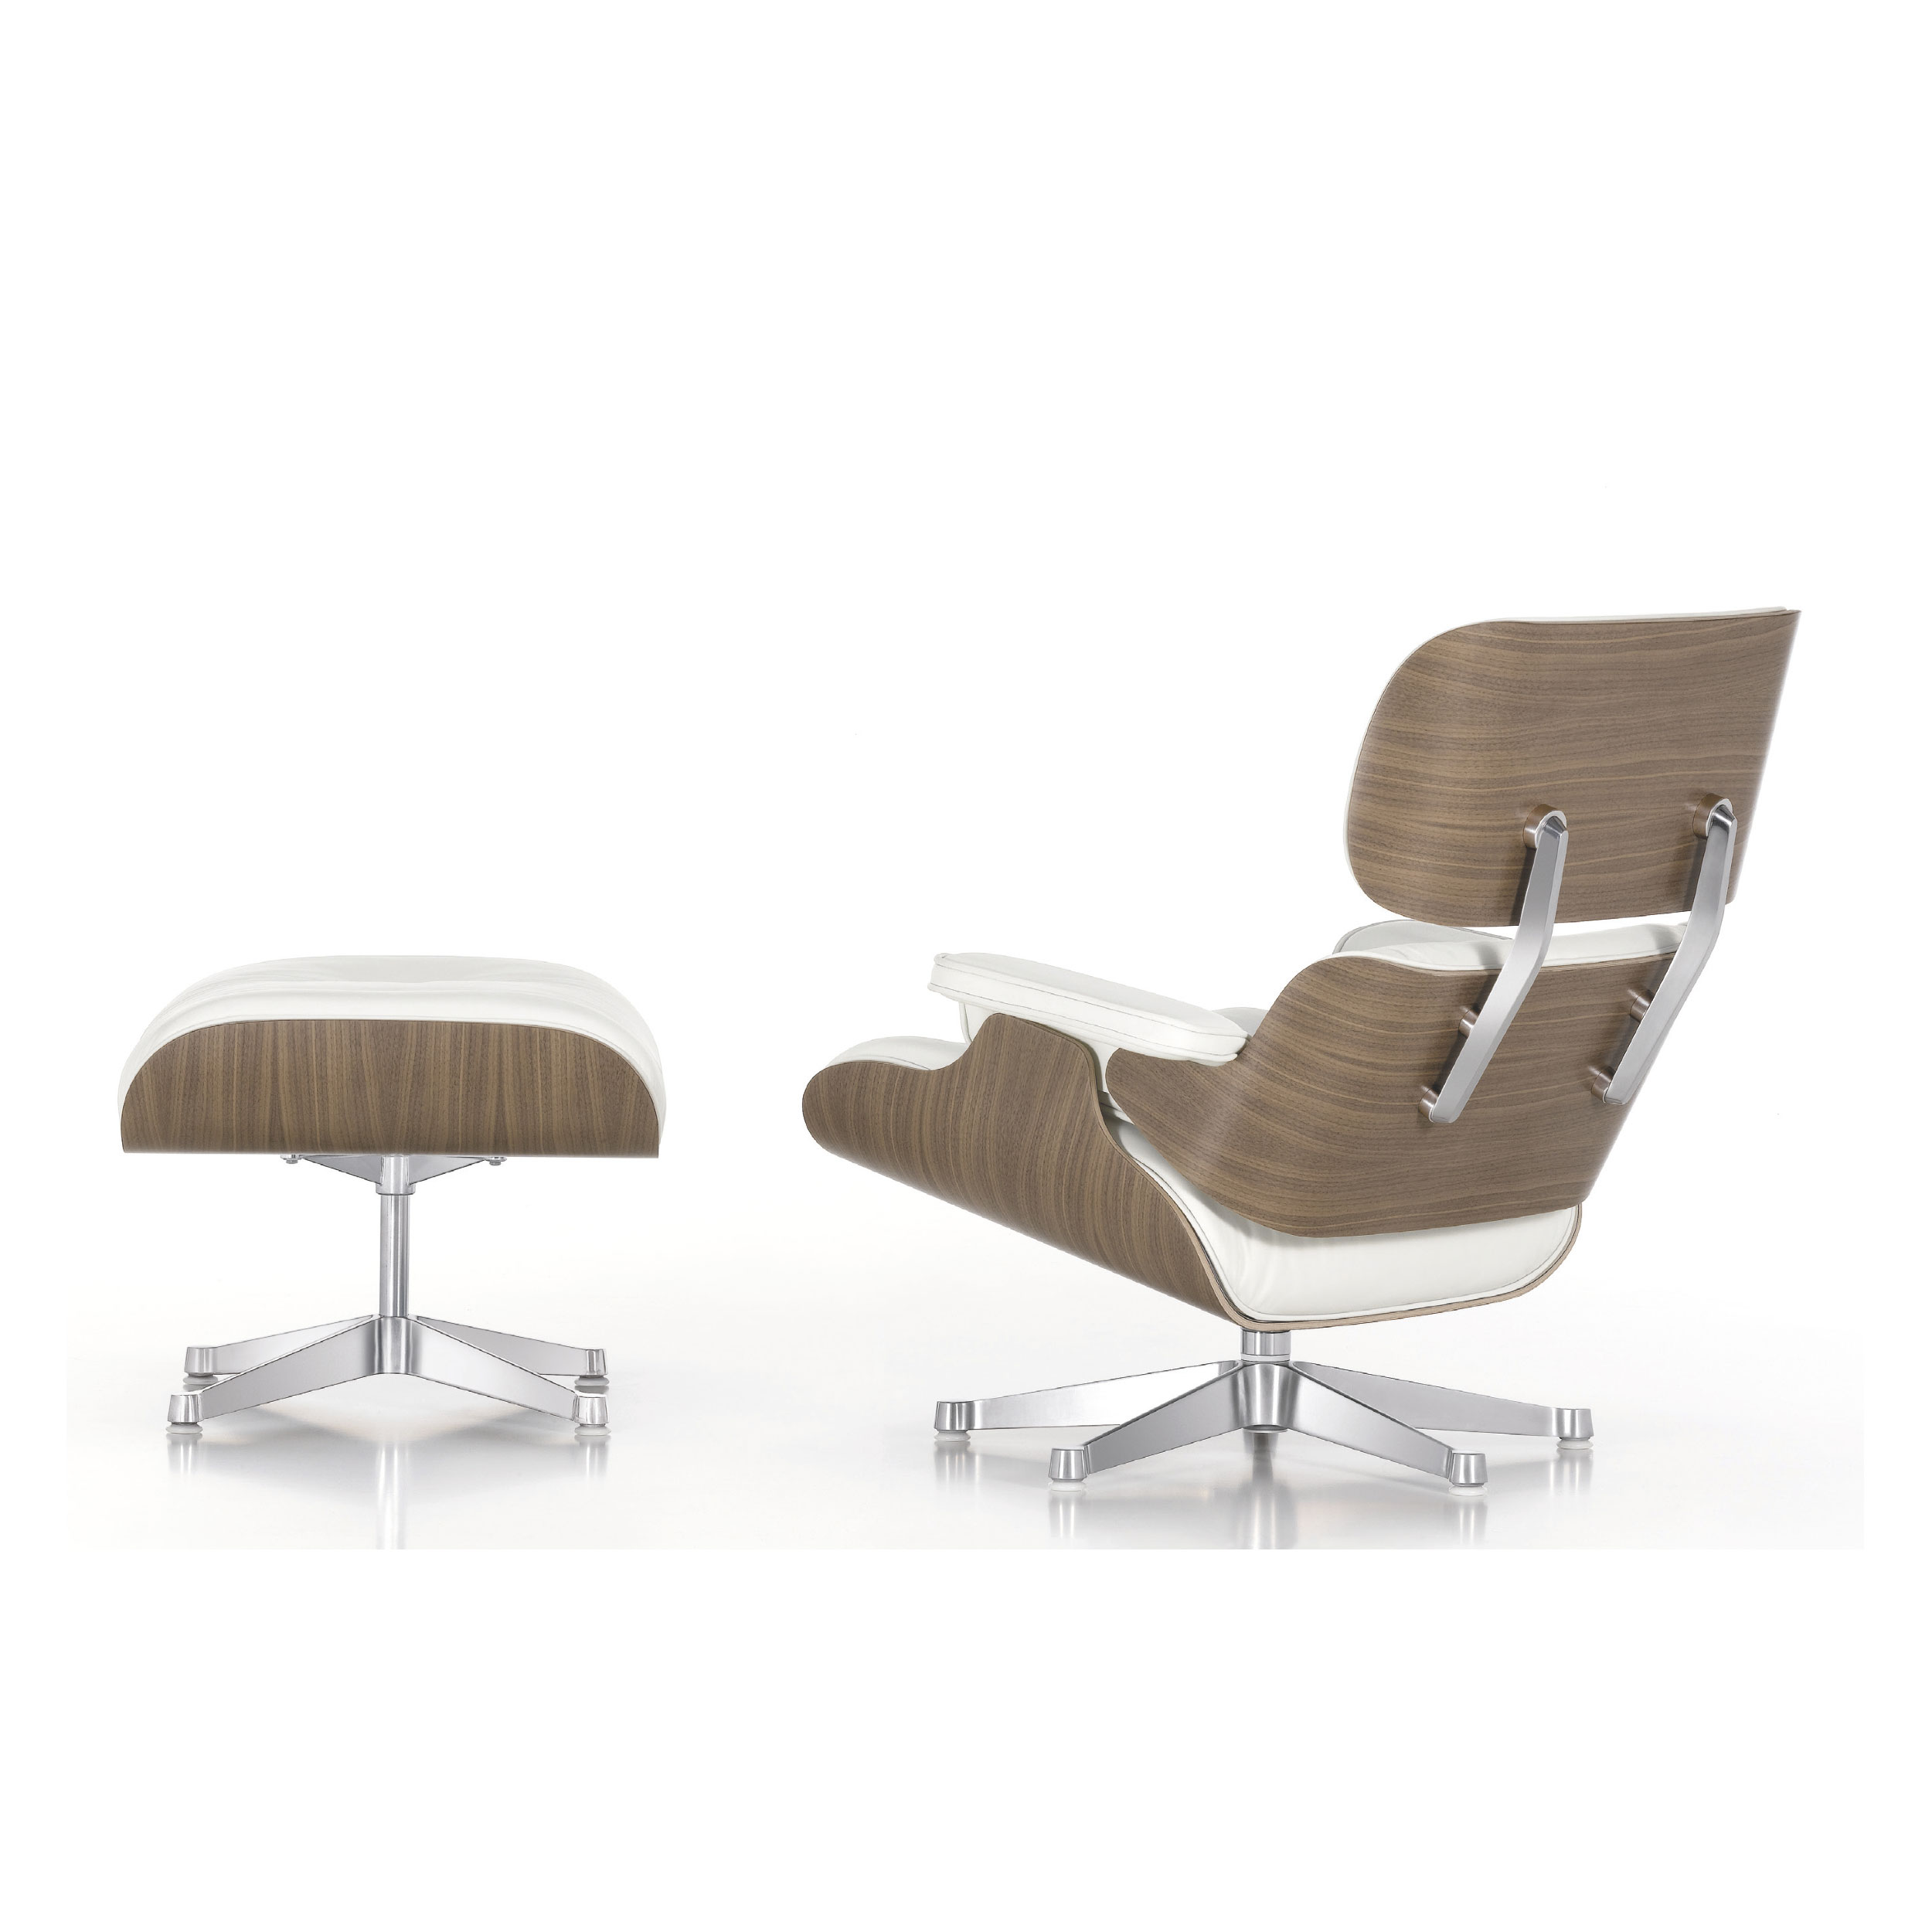 furniture-witching-eames-white-lounge-chair-ottoman-for-beautiful-living-room-furniture-decoration-what-is-an-eames-chair